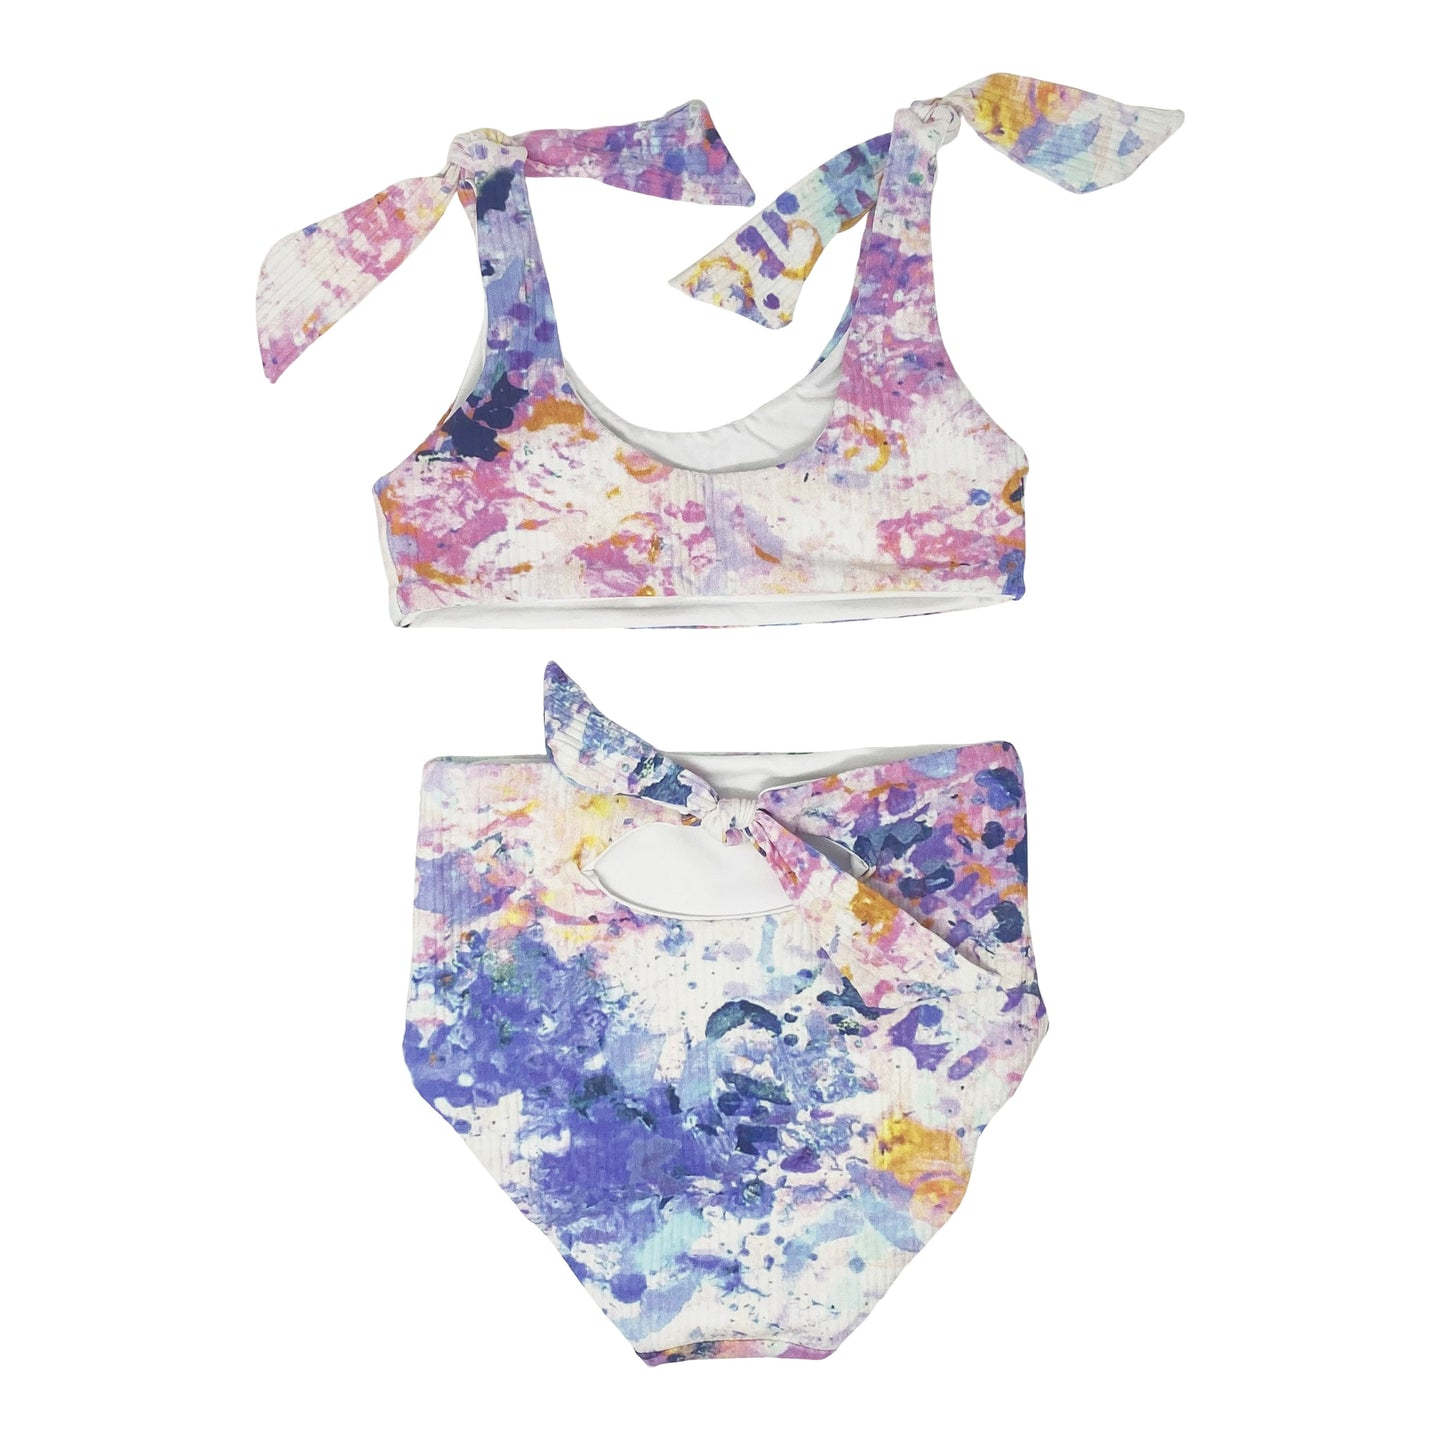 Mila girls bikini in Aquarelle